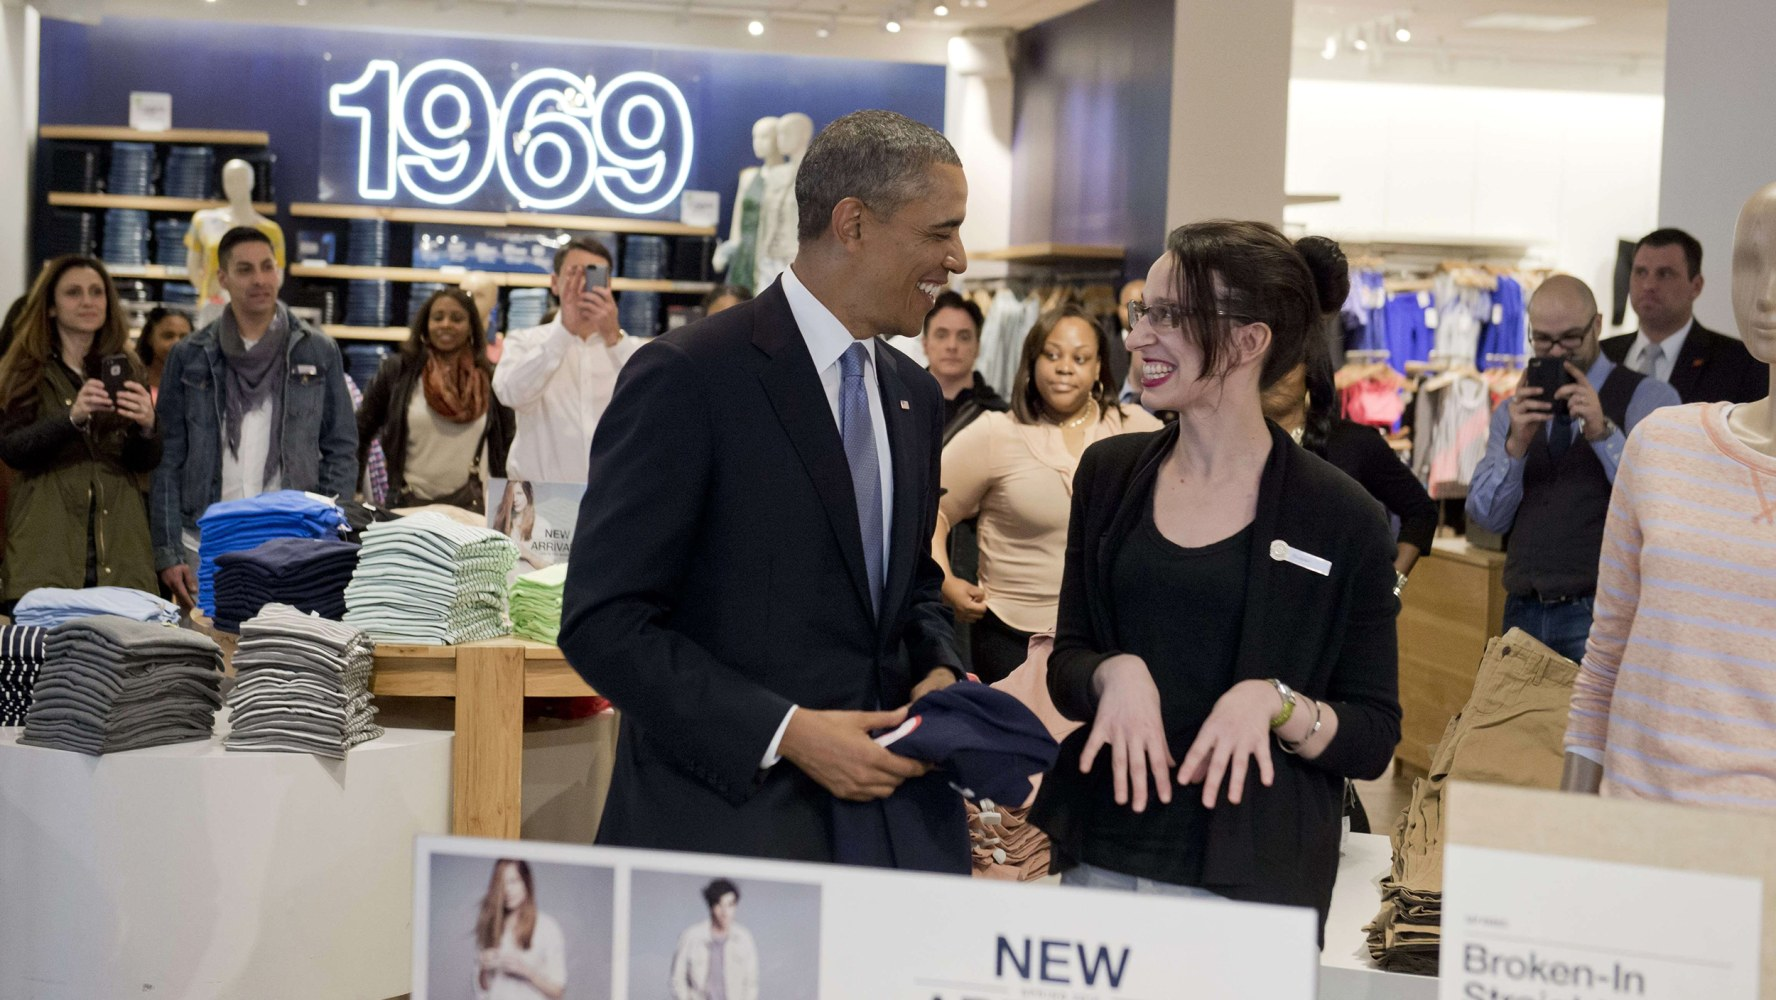 here s what president obama gap shopper bought for his family us president barack obama shops for clothing for his family alongside store employee susan panariello